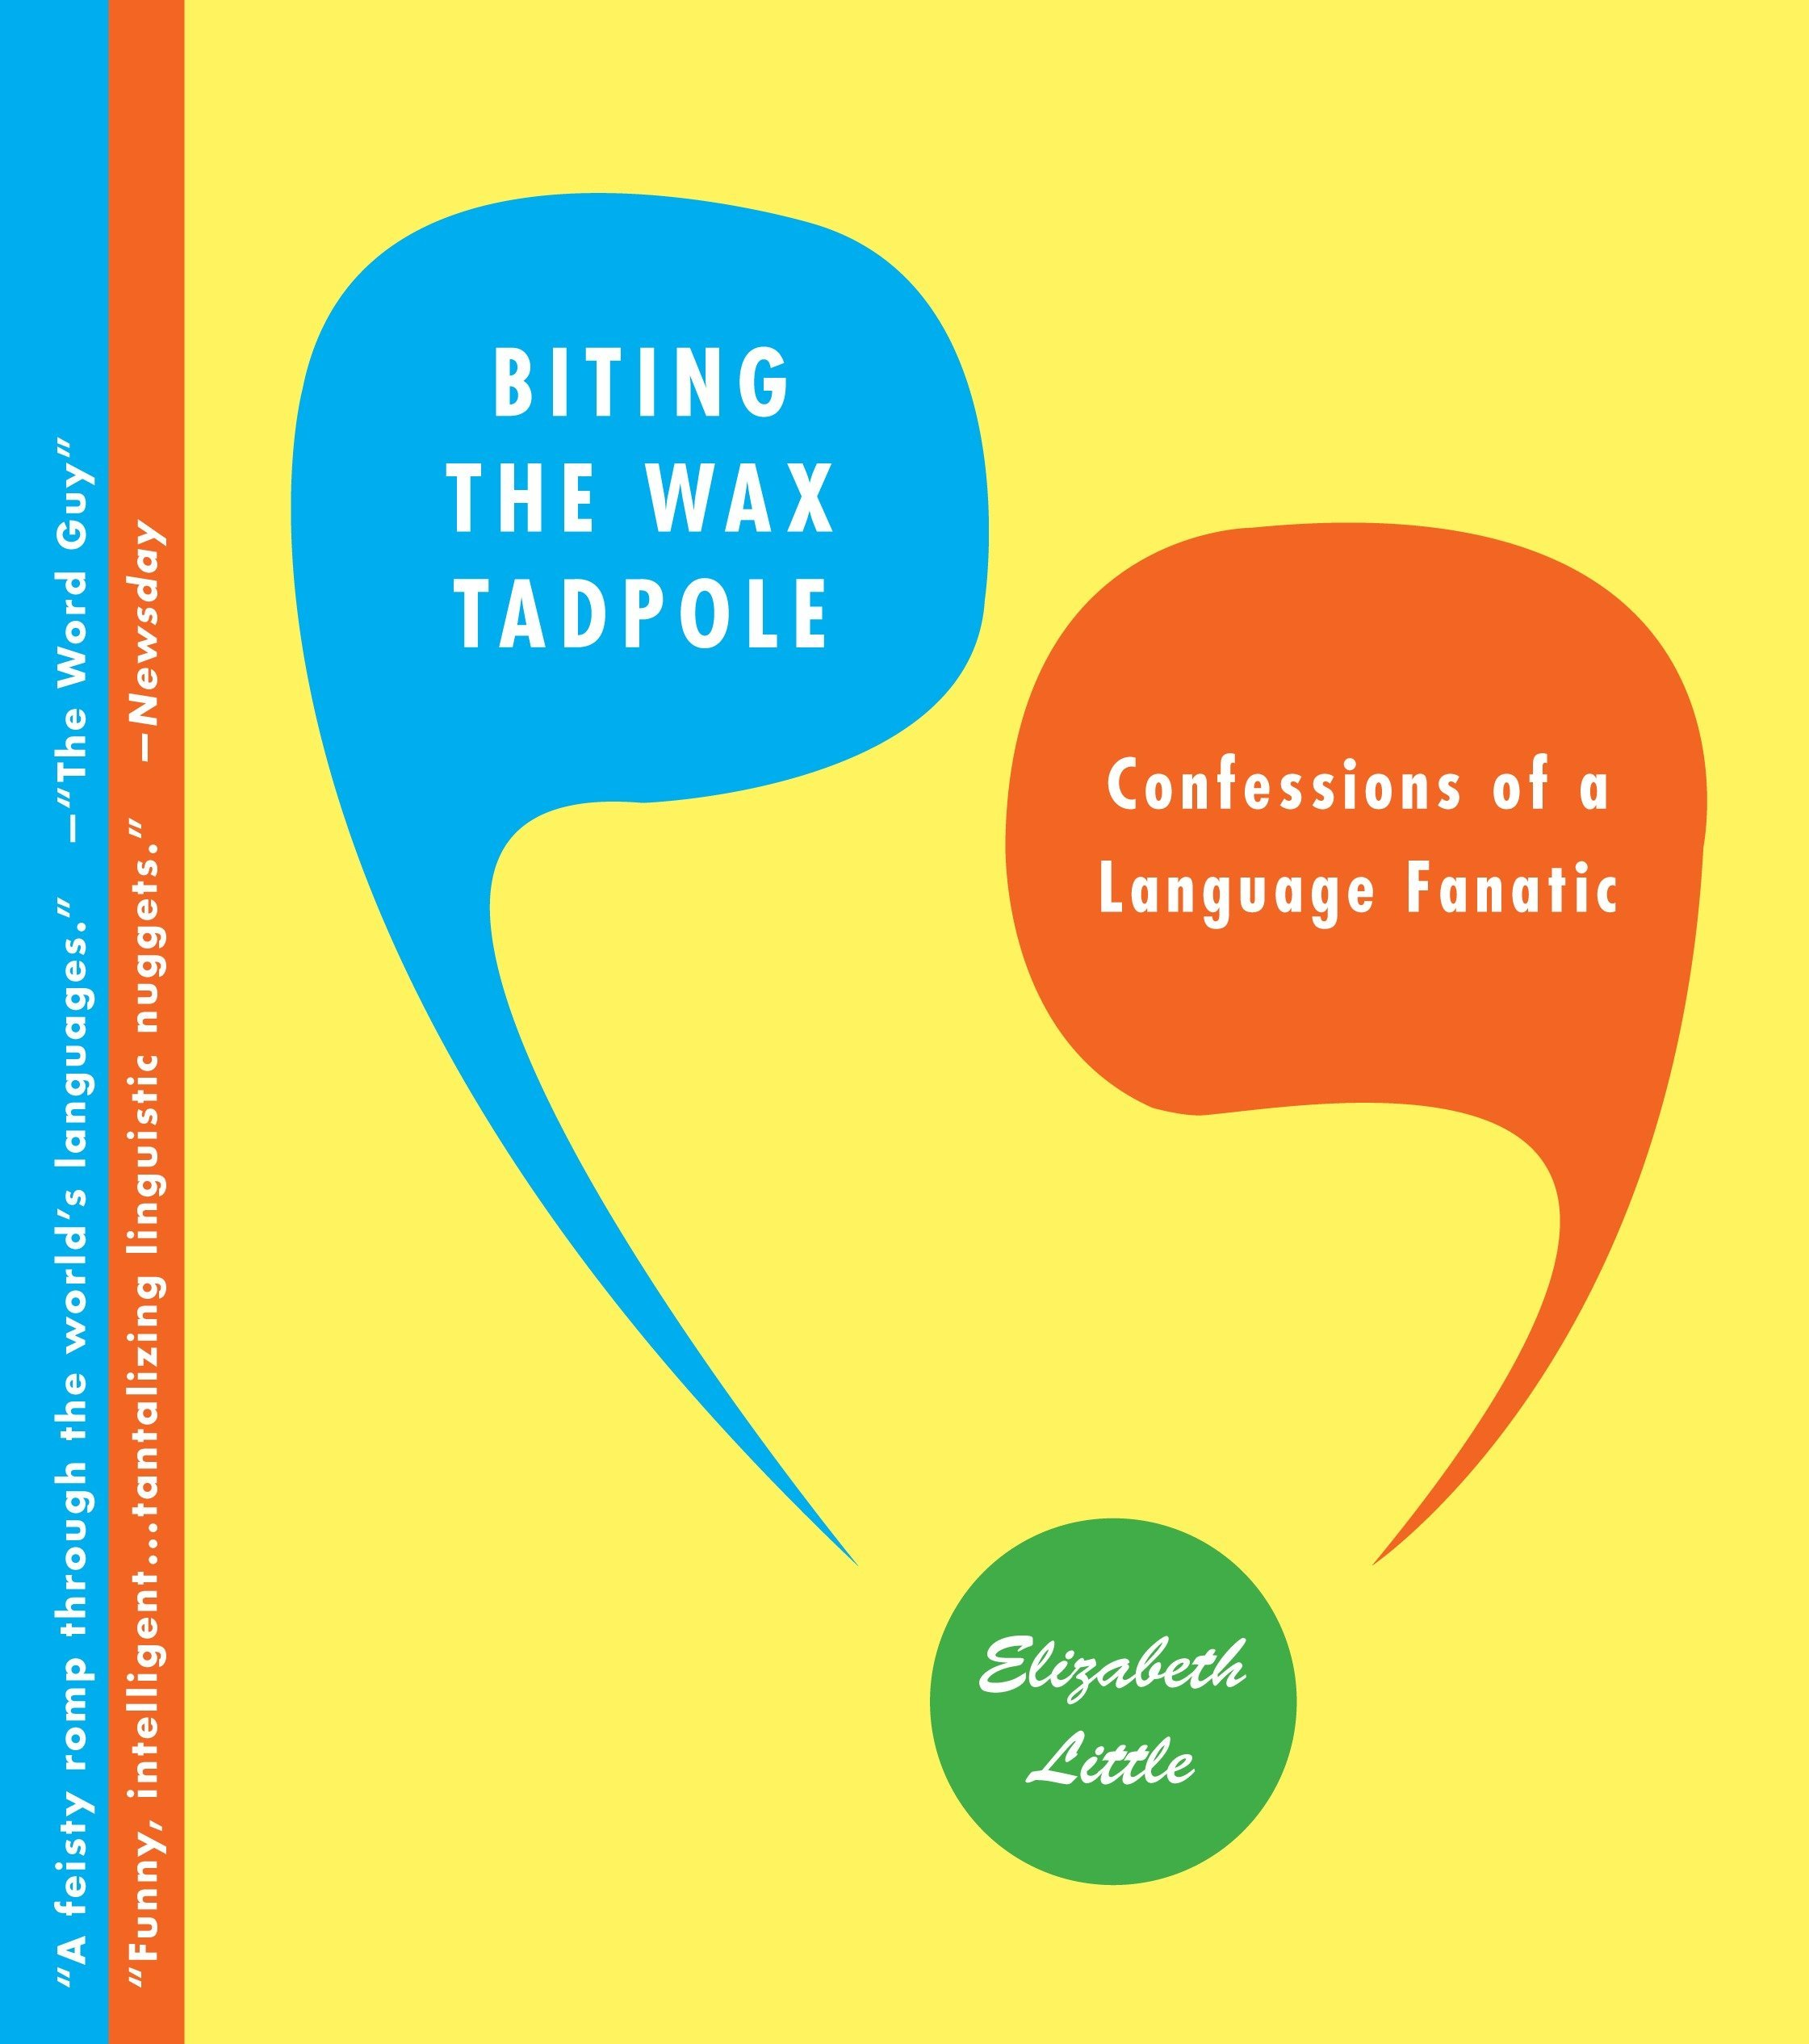 Biting the Wax Tadpole: Confessions of a Language Fanatic